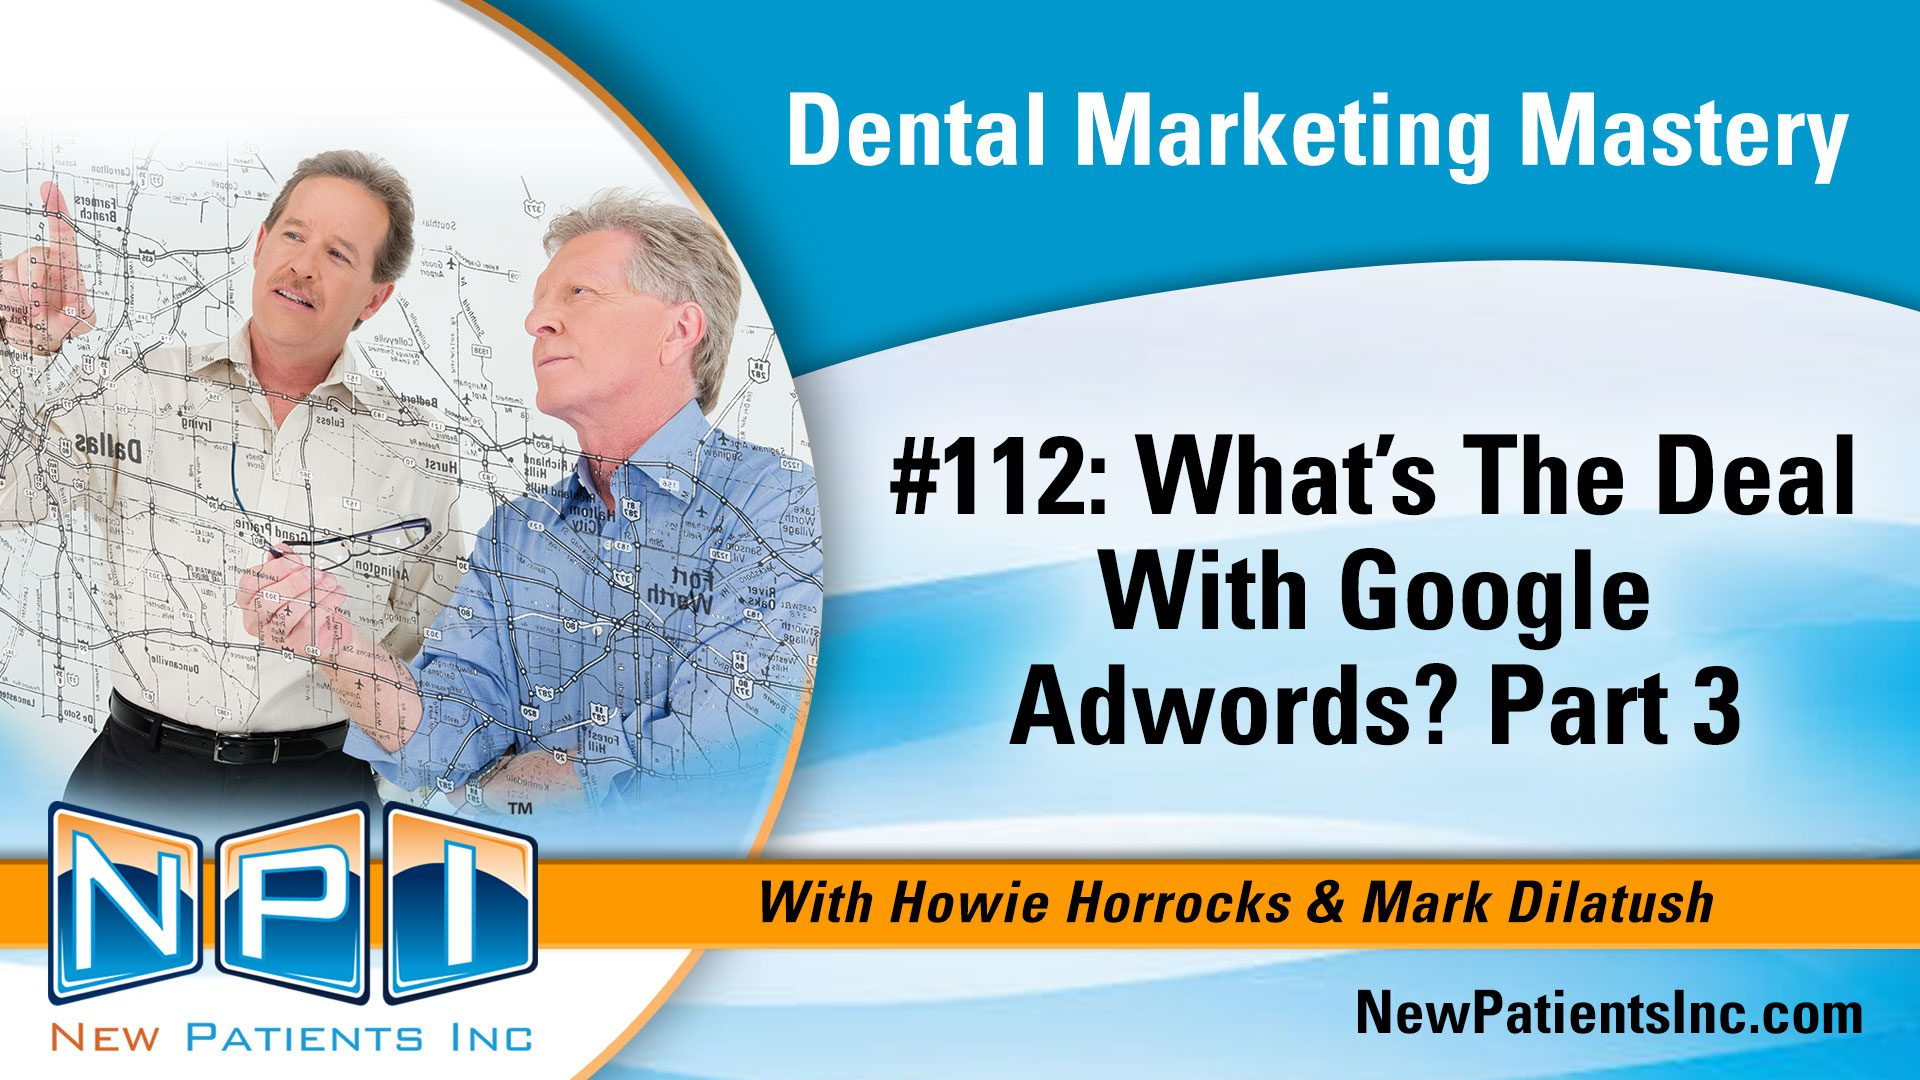 What's the Deal With Google Adwords for Dentists